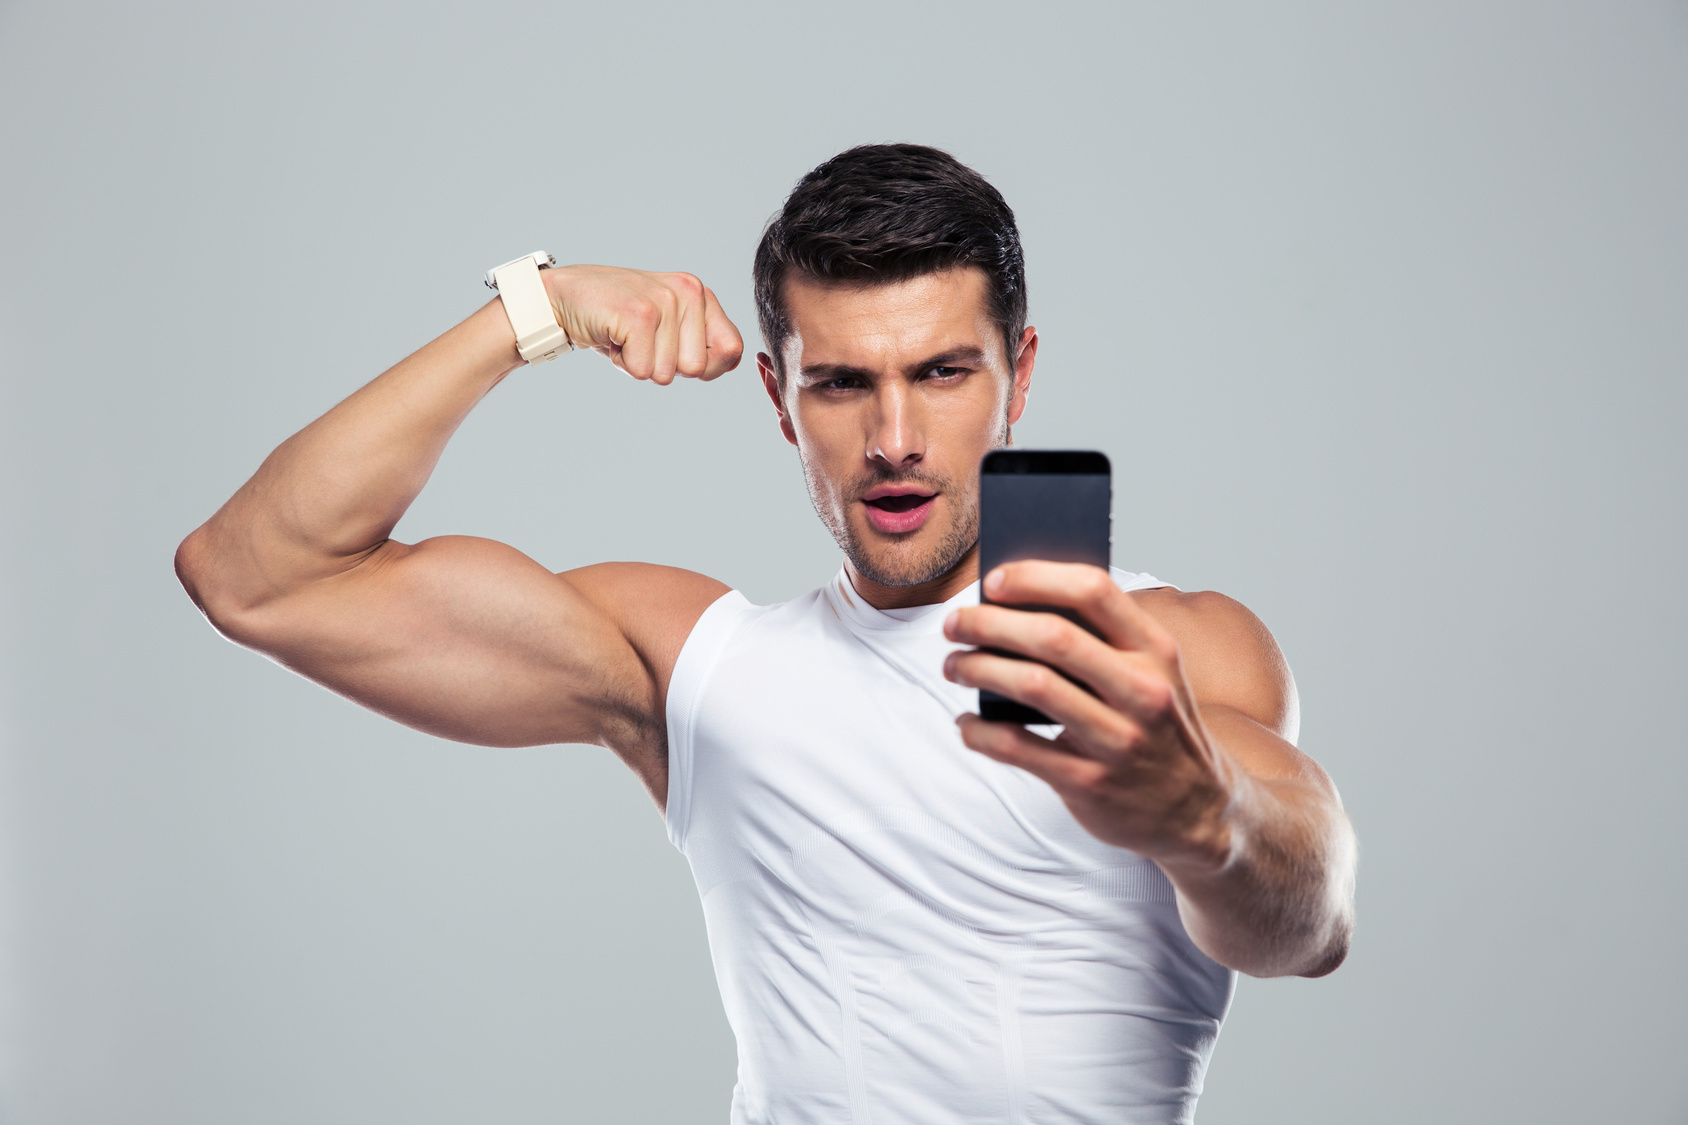 """The """"Gym Selfie"""" narcissism has reached new heights"""